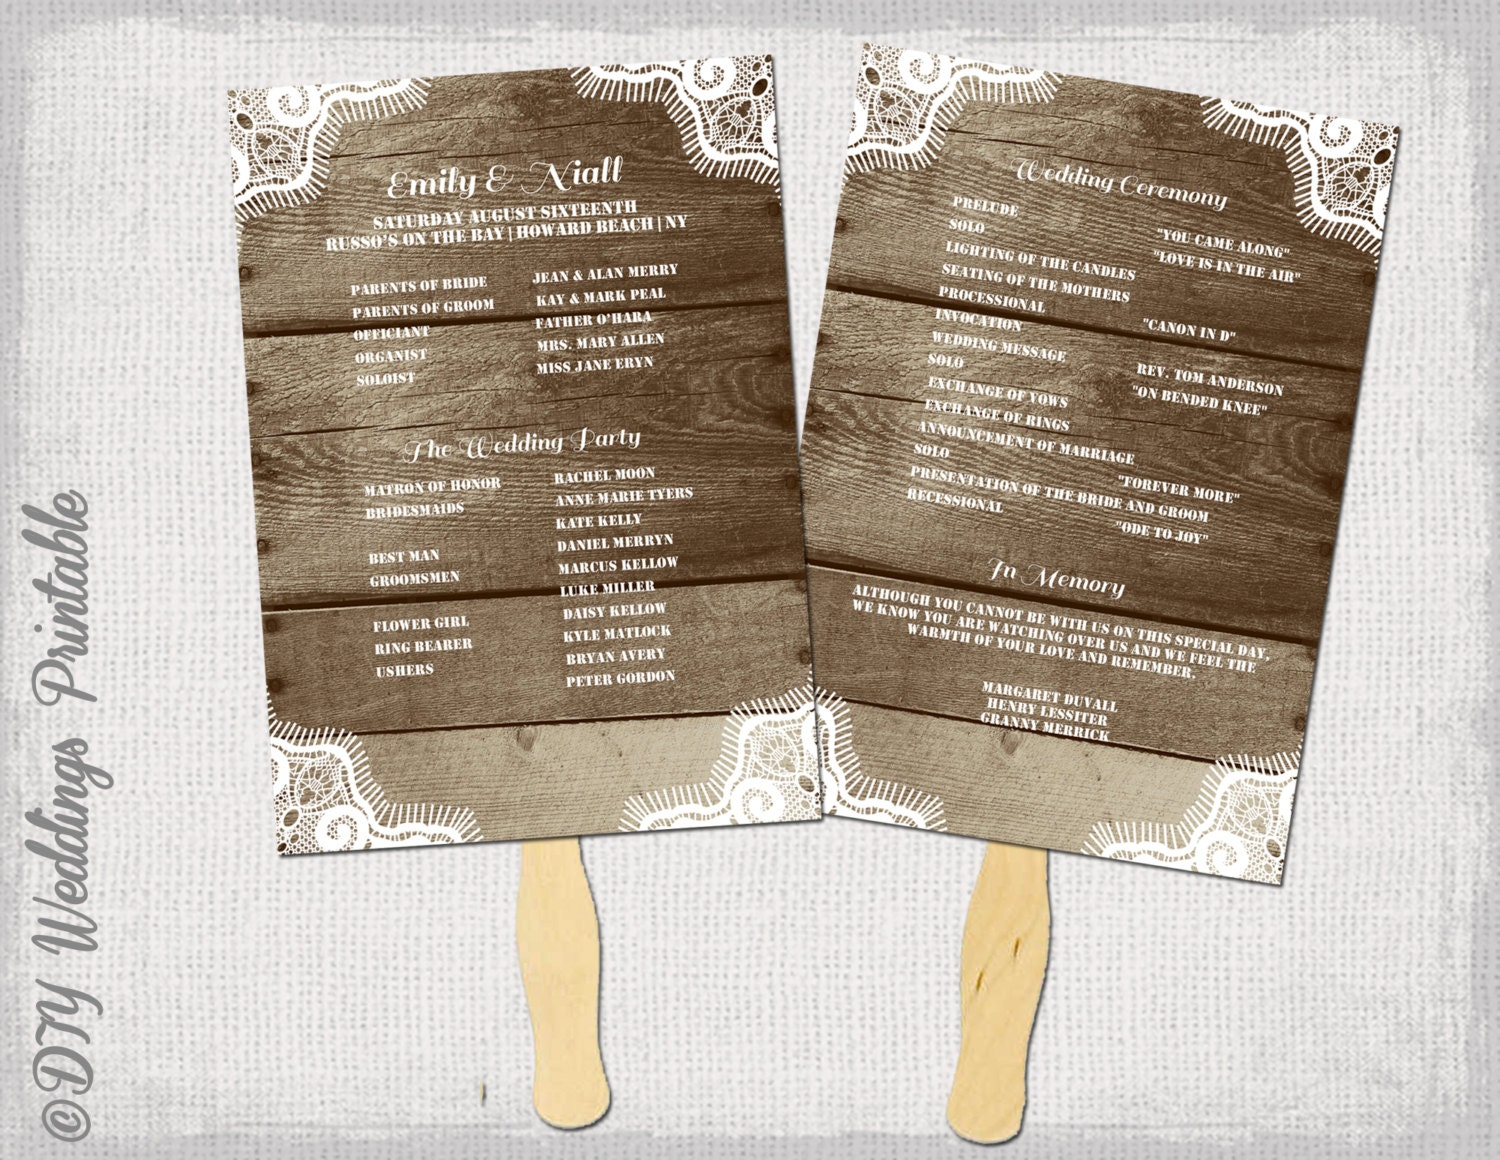 wedding programs template word radiovkmtk - Free Wedding Program Fan Templates